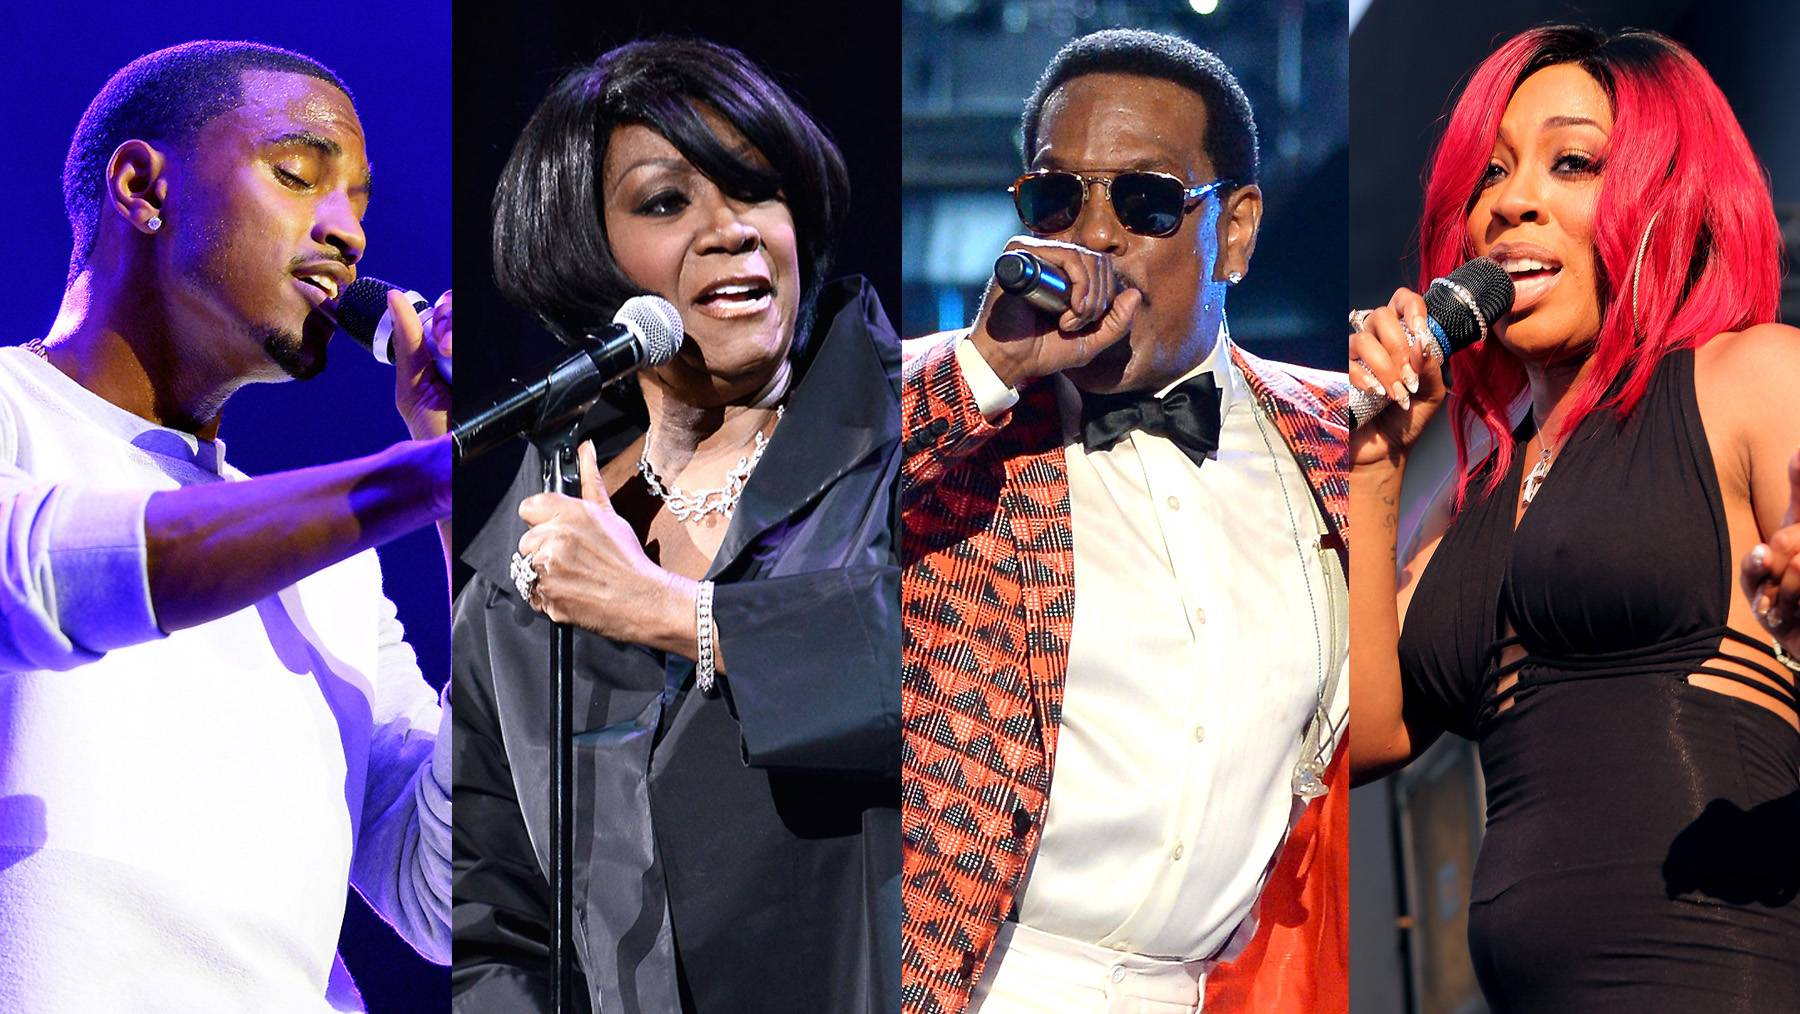 Performers  - Take a look at who is rocking the stage for The BET Honors '15.(Photos from left: Earl Gibson/BET/Getty Images for BET, Gary Gershoff/Getty Images for Super Bowl, Mark Davis/Getty Images for BET, James W. Lemke/Getty Images for BET)